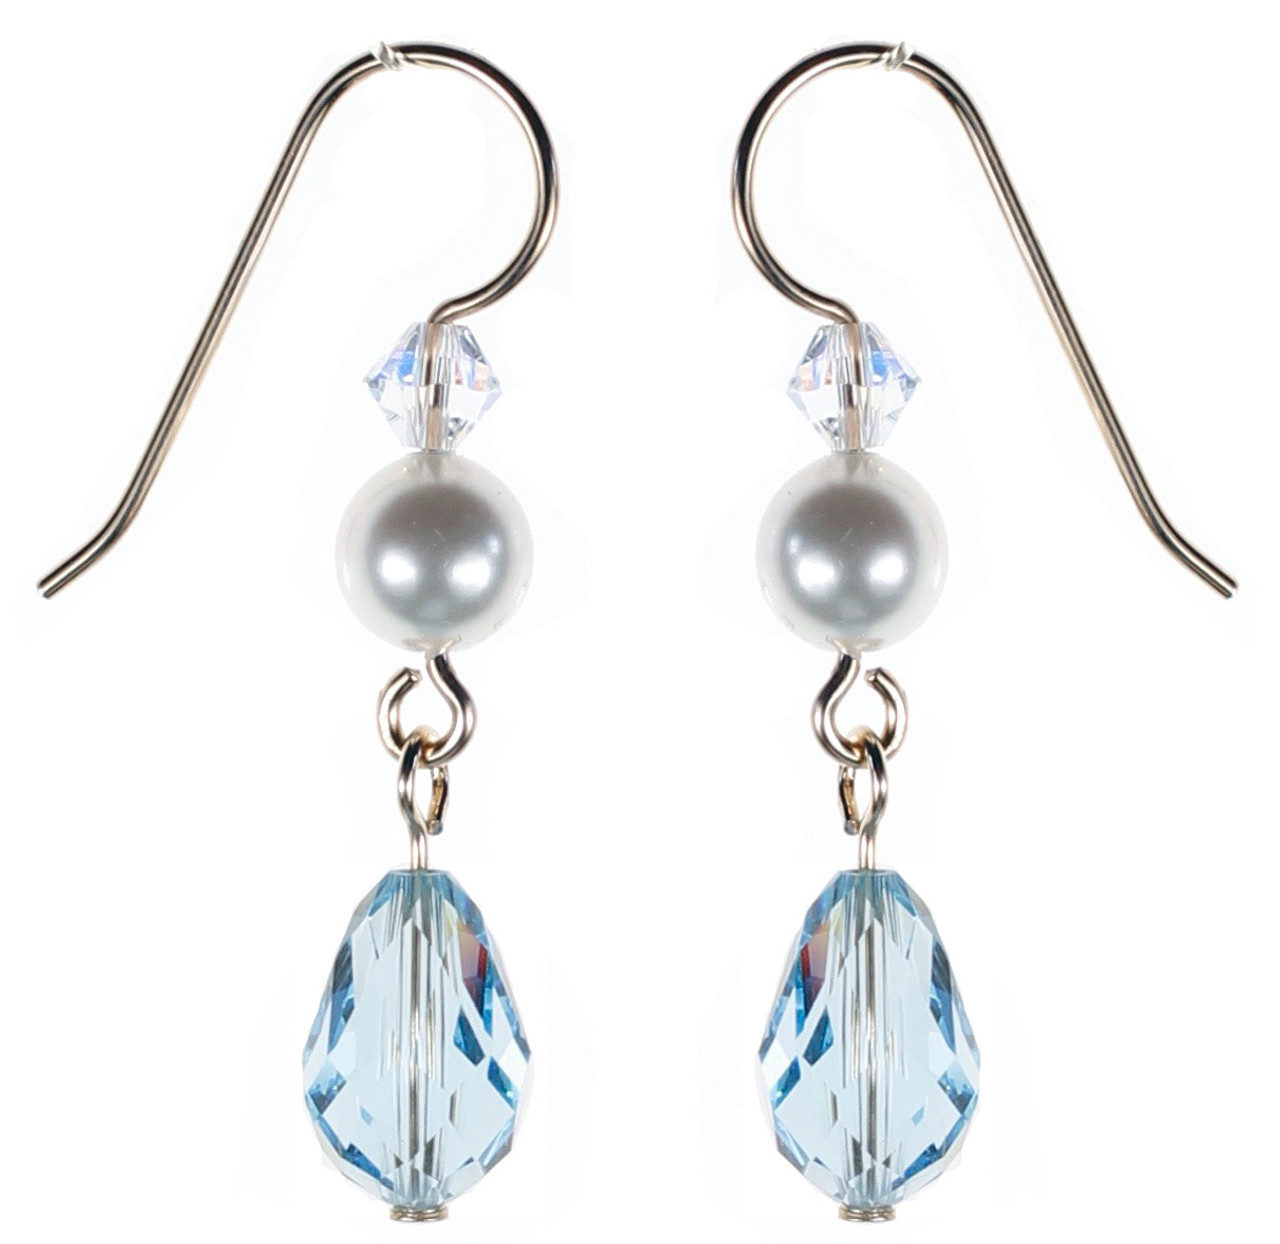 36e697244 DANGLING BLUE CRYSTAL EARRINGS • AQUAMARINE MARCH BIRTHSTONE JEWELRY • KAREN  CURTIS NYC